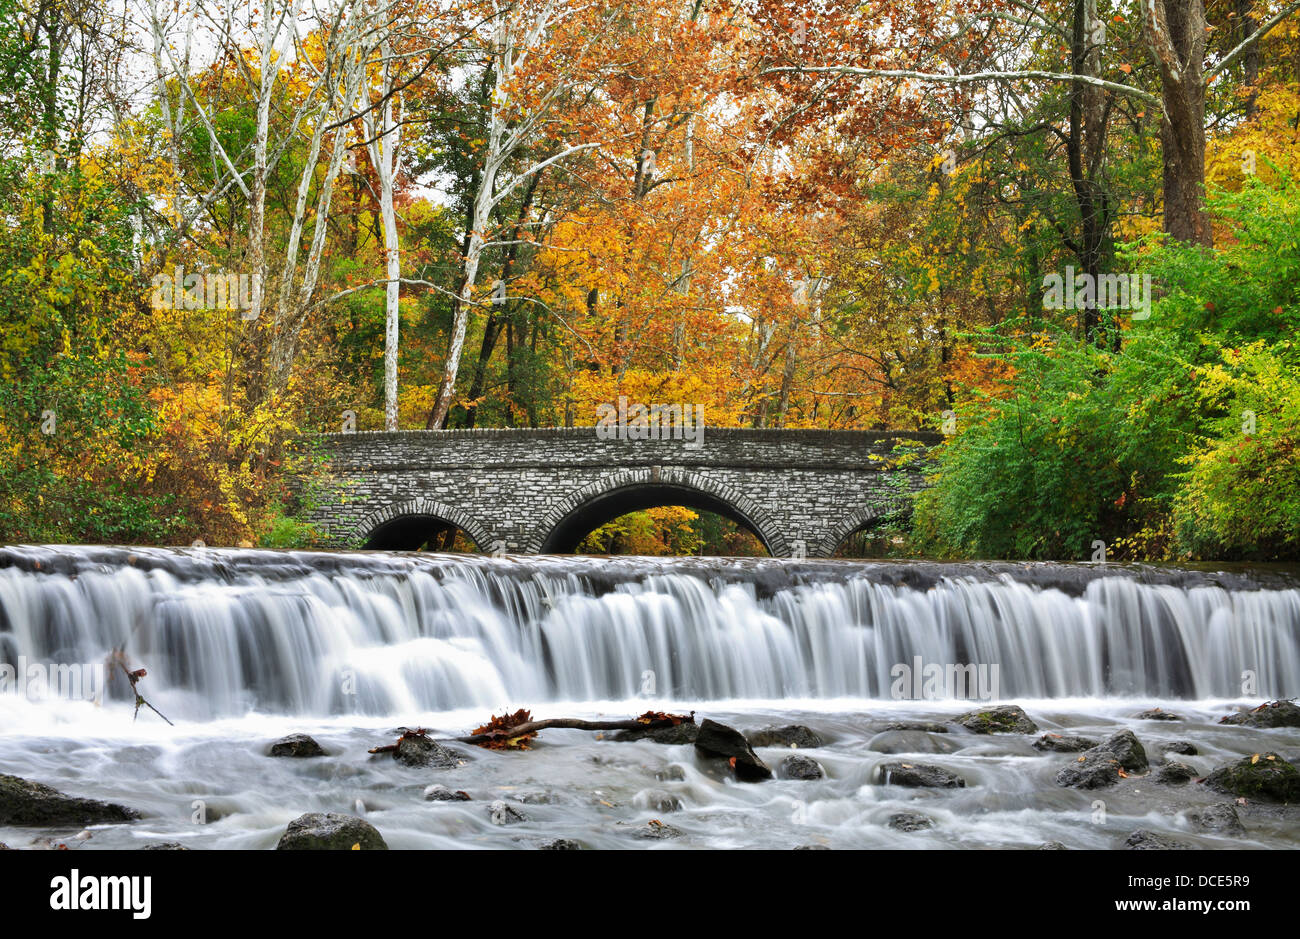 A Stone Bridge And Waterfall During Autumn In The Park, Sharon Woods, Southwestern Ohio, USA - Stock Image